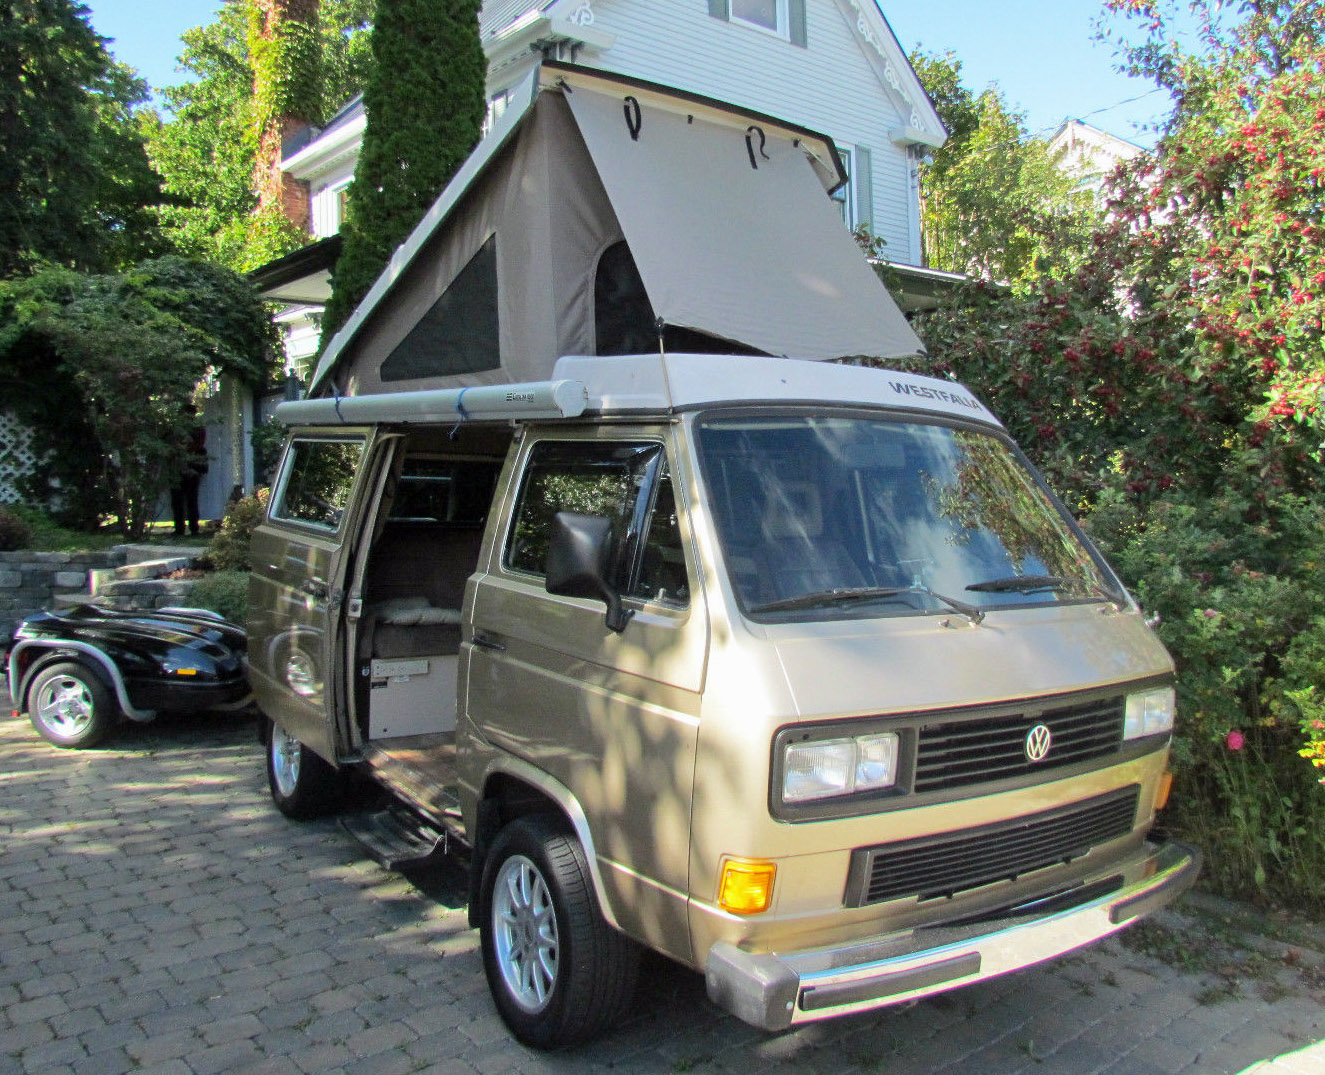 1986 vw vanagon syncro westfalia camper in quebec ca 30k usd starting bid. Black Bedroom Furniture Sets. Home Design Ideas